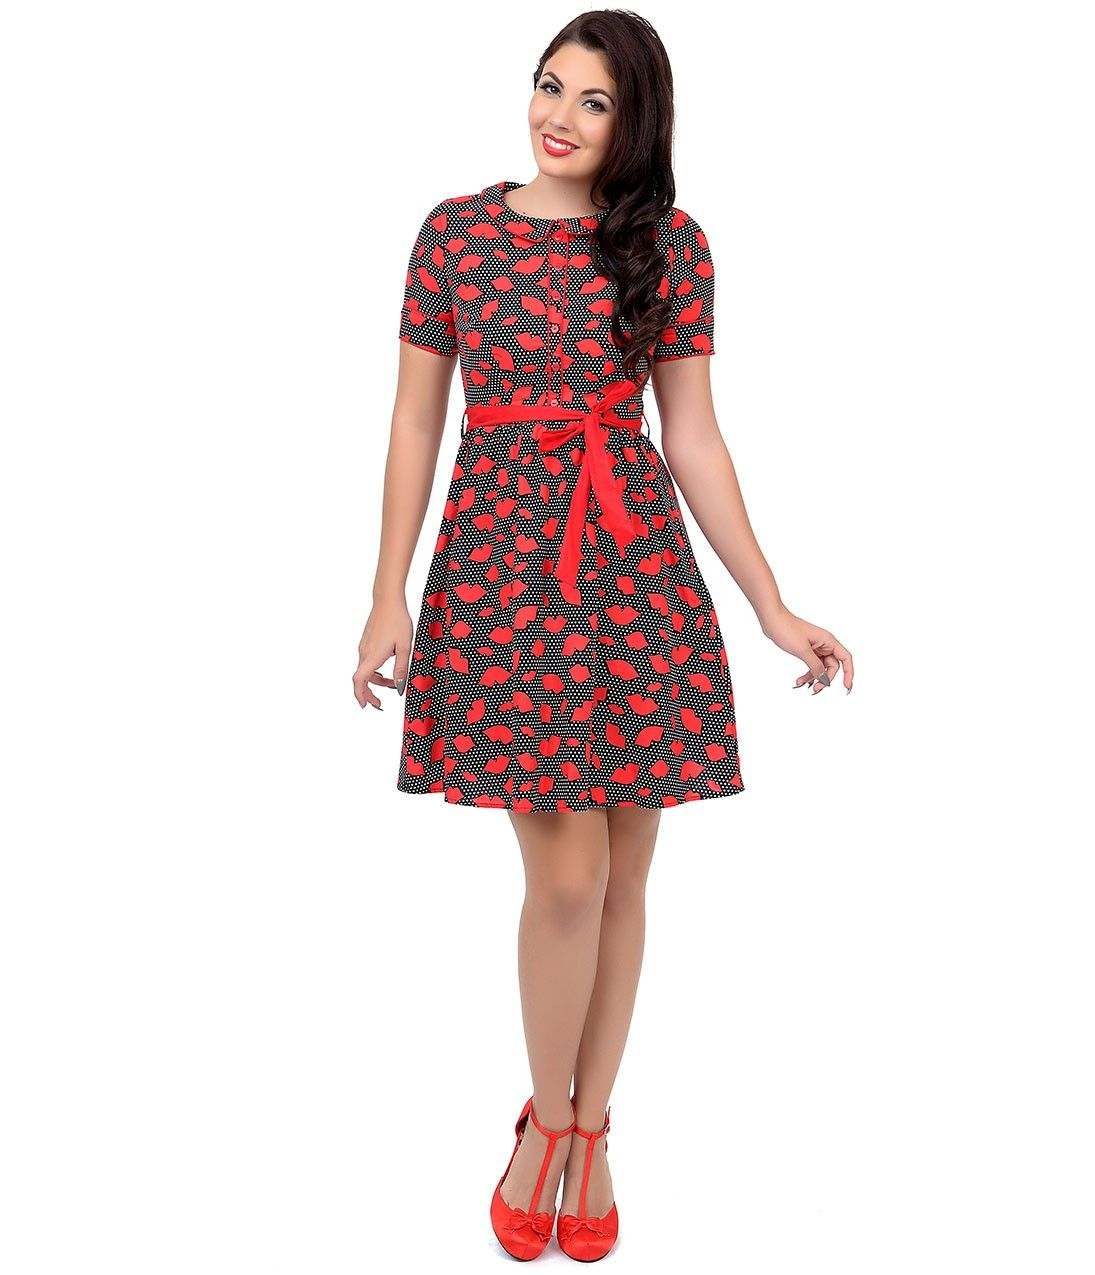 Black, White & Red Polka Dot Lips Fit N Flare Dress | Dress Fancy ...